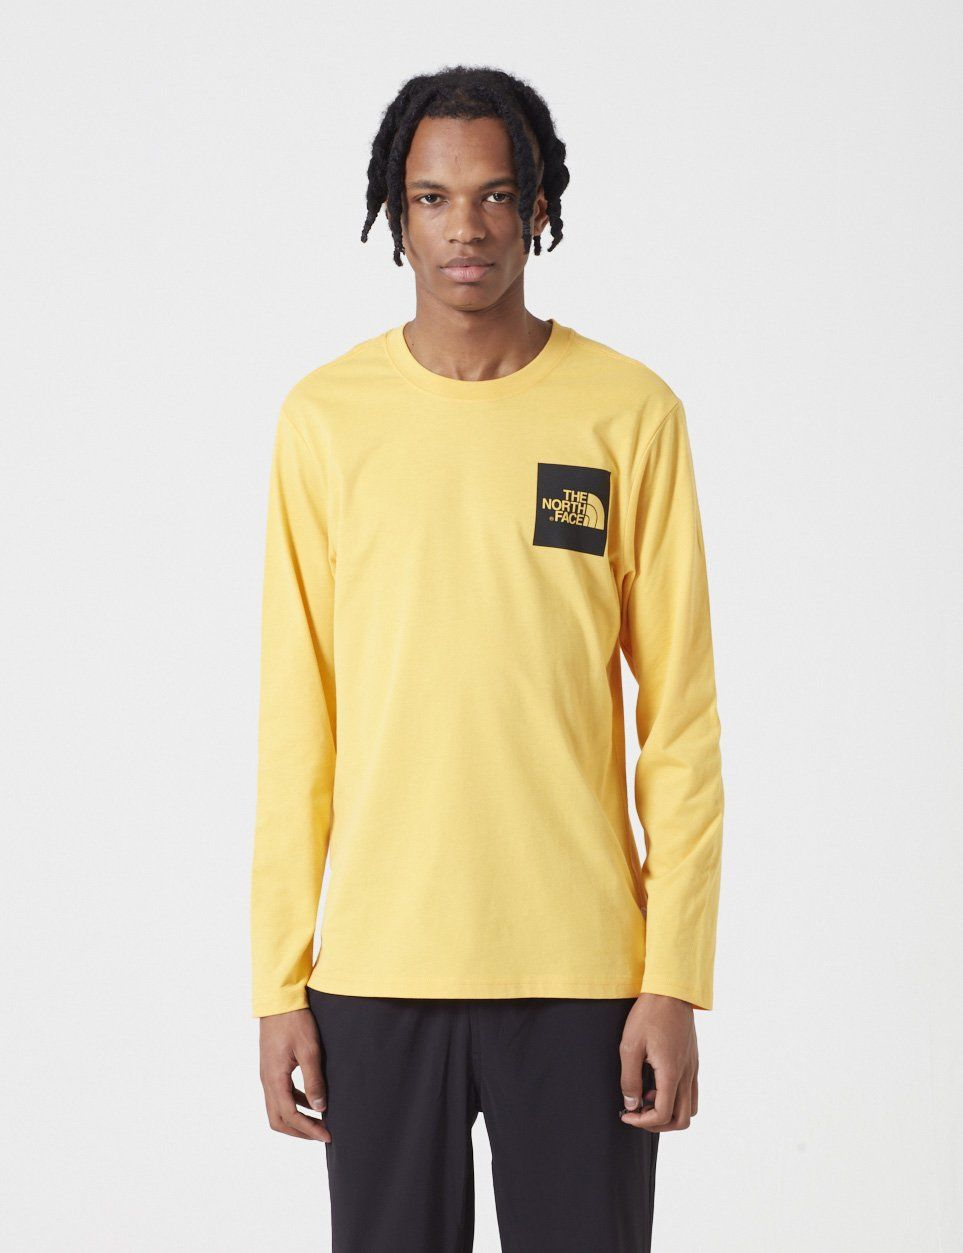 15e092696 North Face Black Label Fine Long Sleeve T-Shirt - TNF Yellow ...